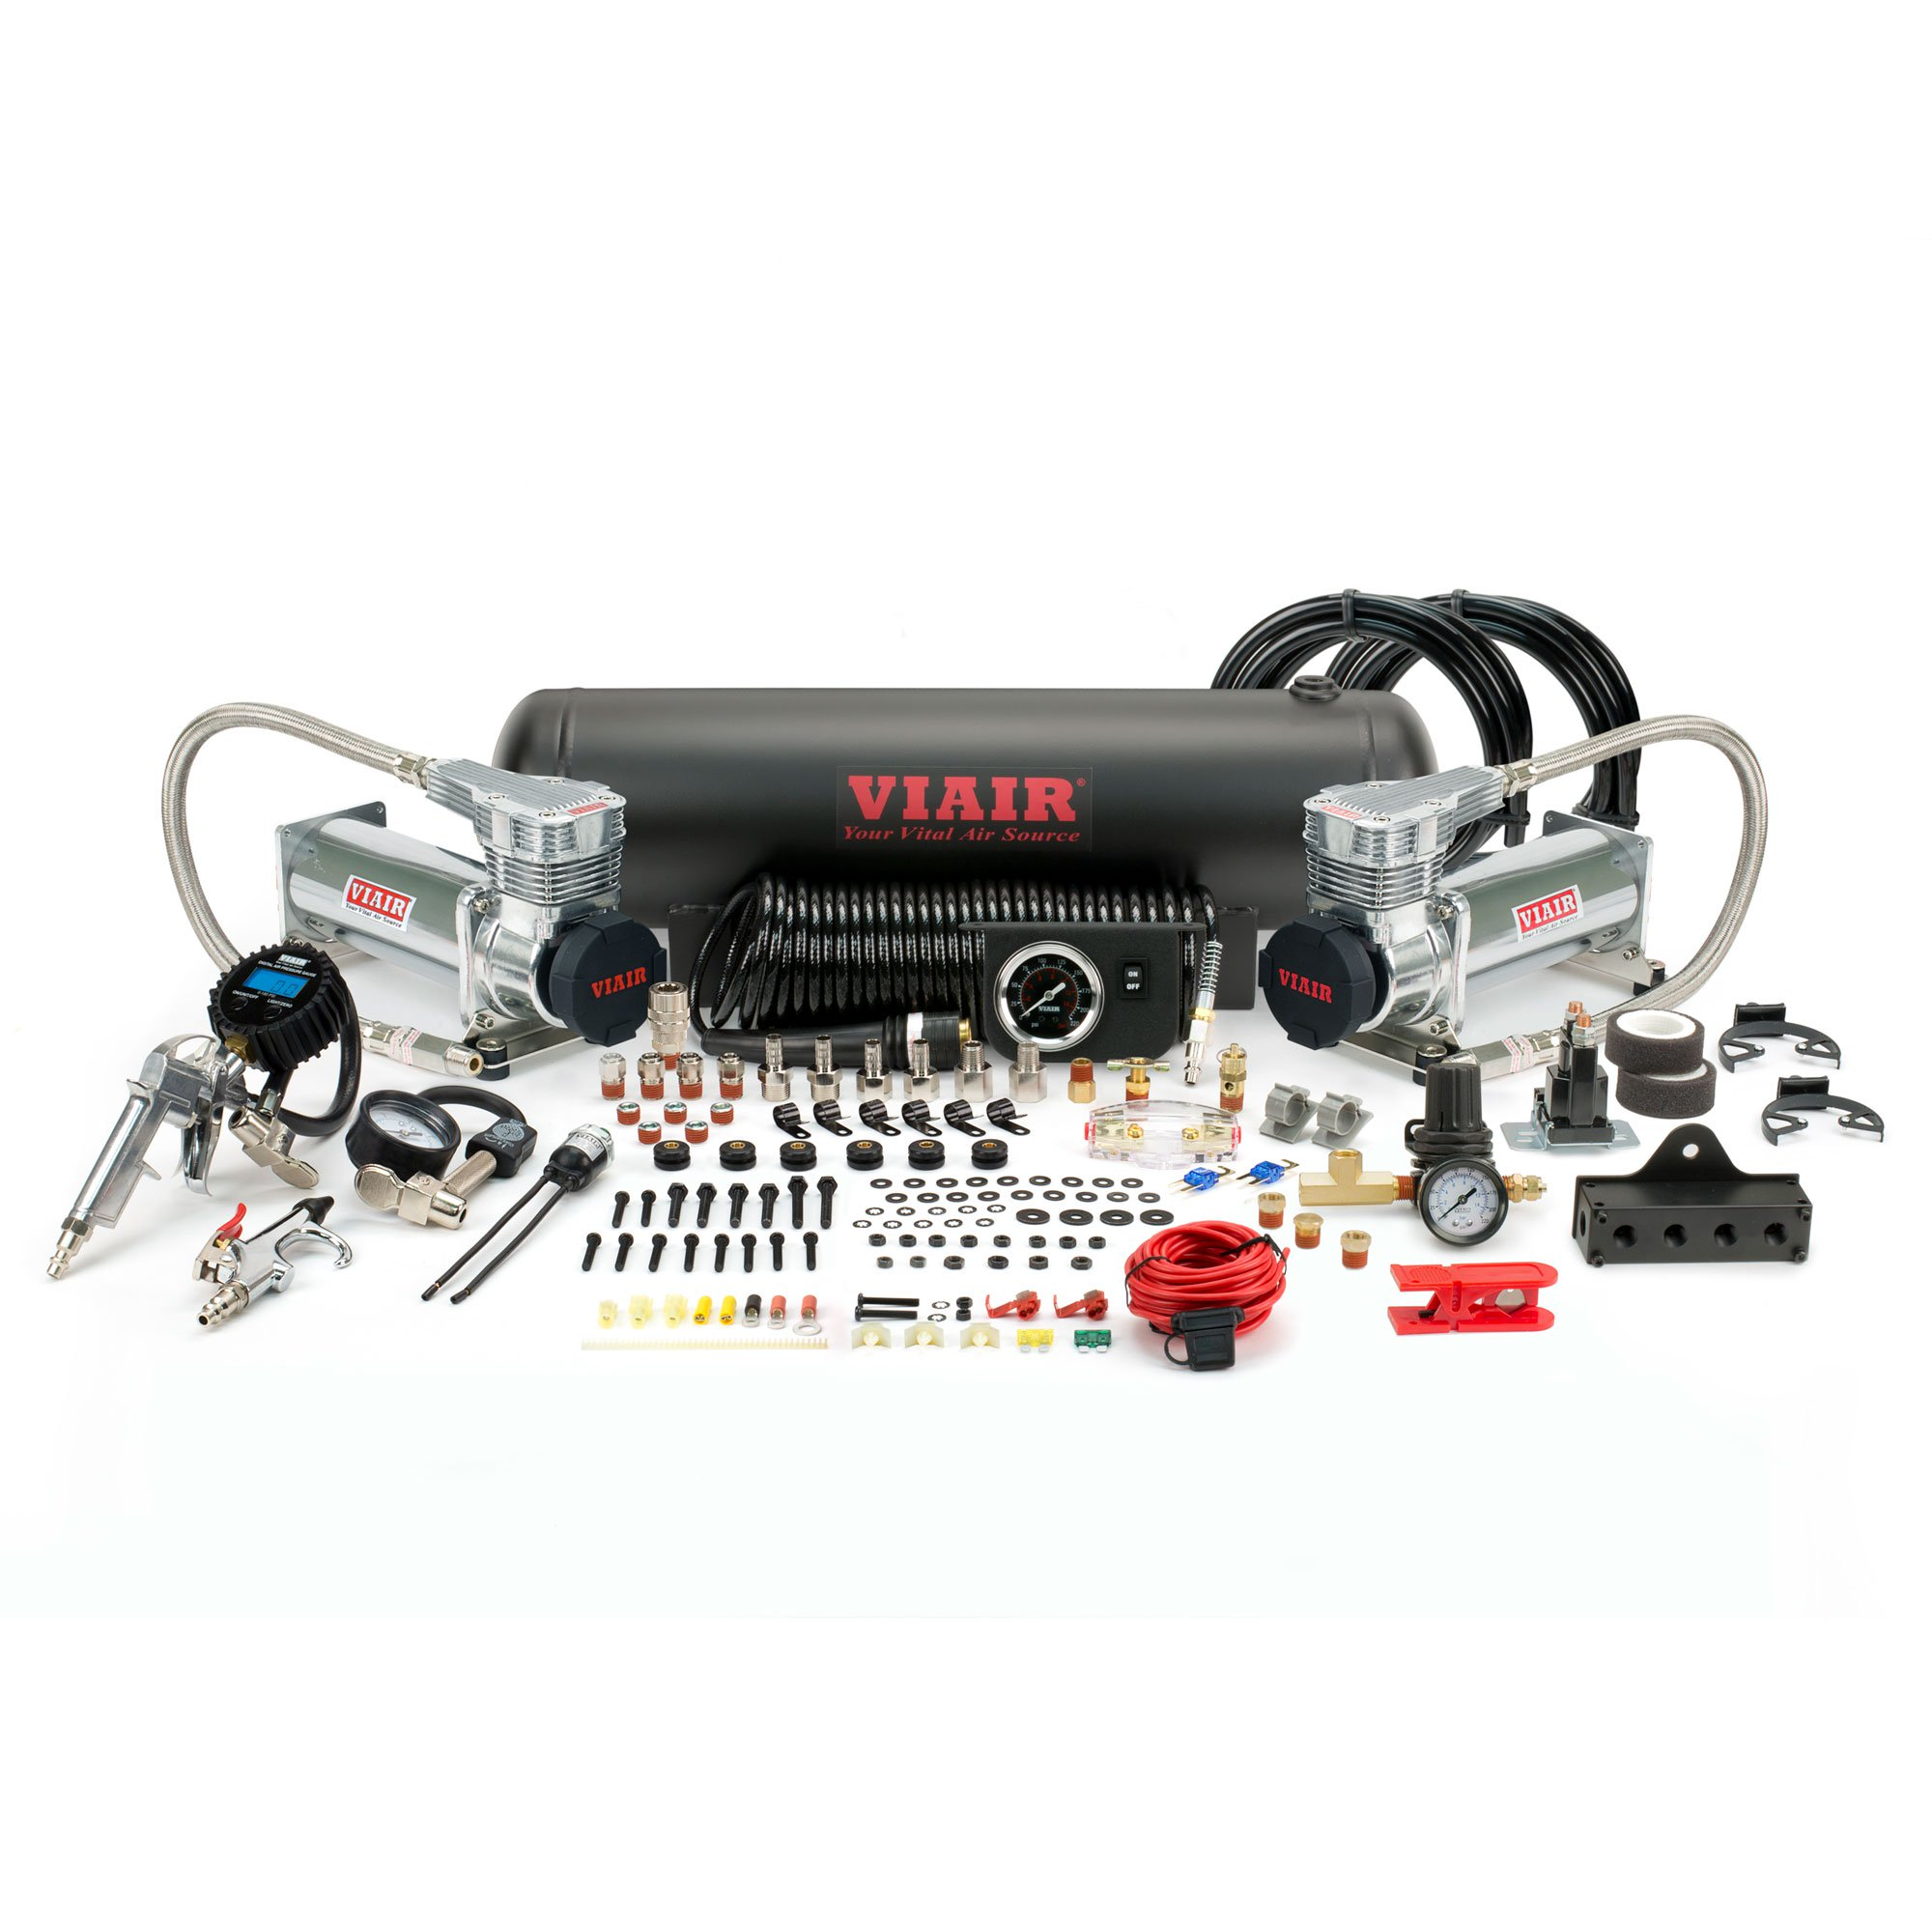 VIAIR 485C Gen 2 200 PSI Dual Onboard Air OBA Electric Compressor Kit, Platinum